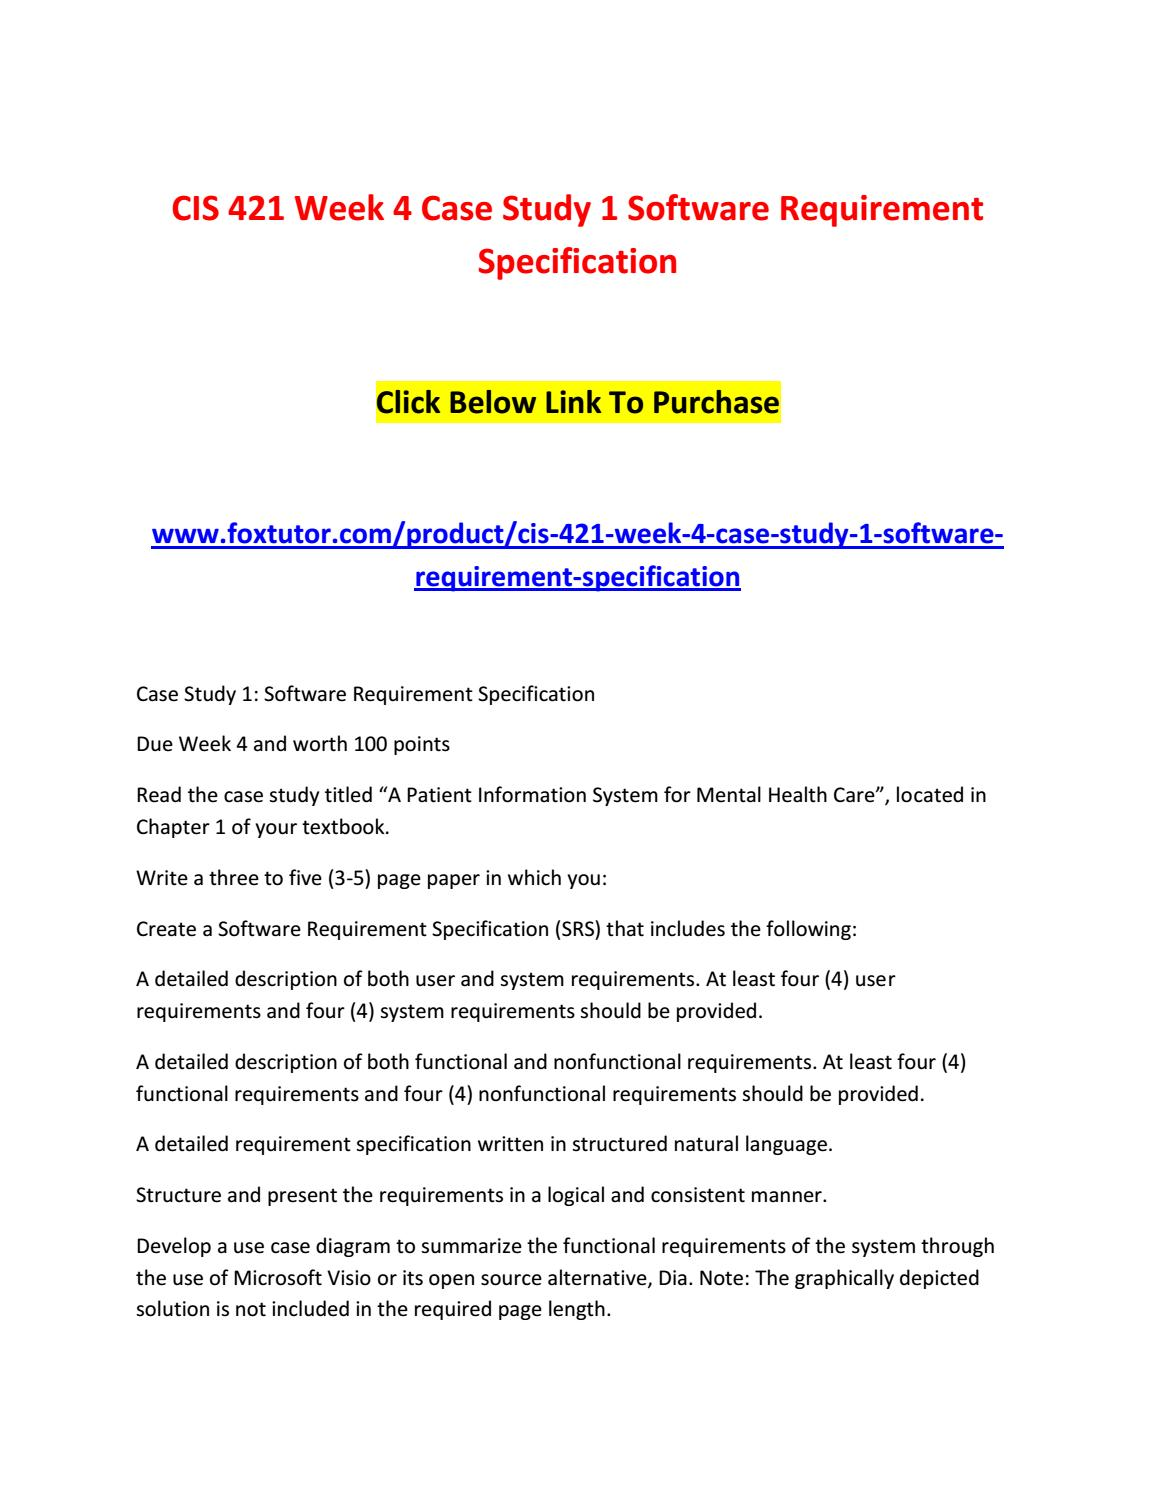 Cis 421 Week 4 Case Study 1 Software Requirement Specification By